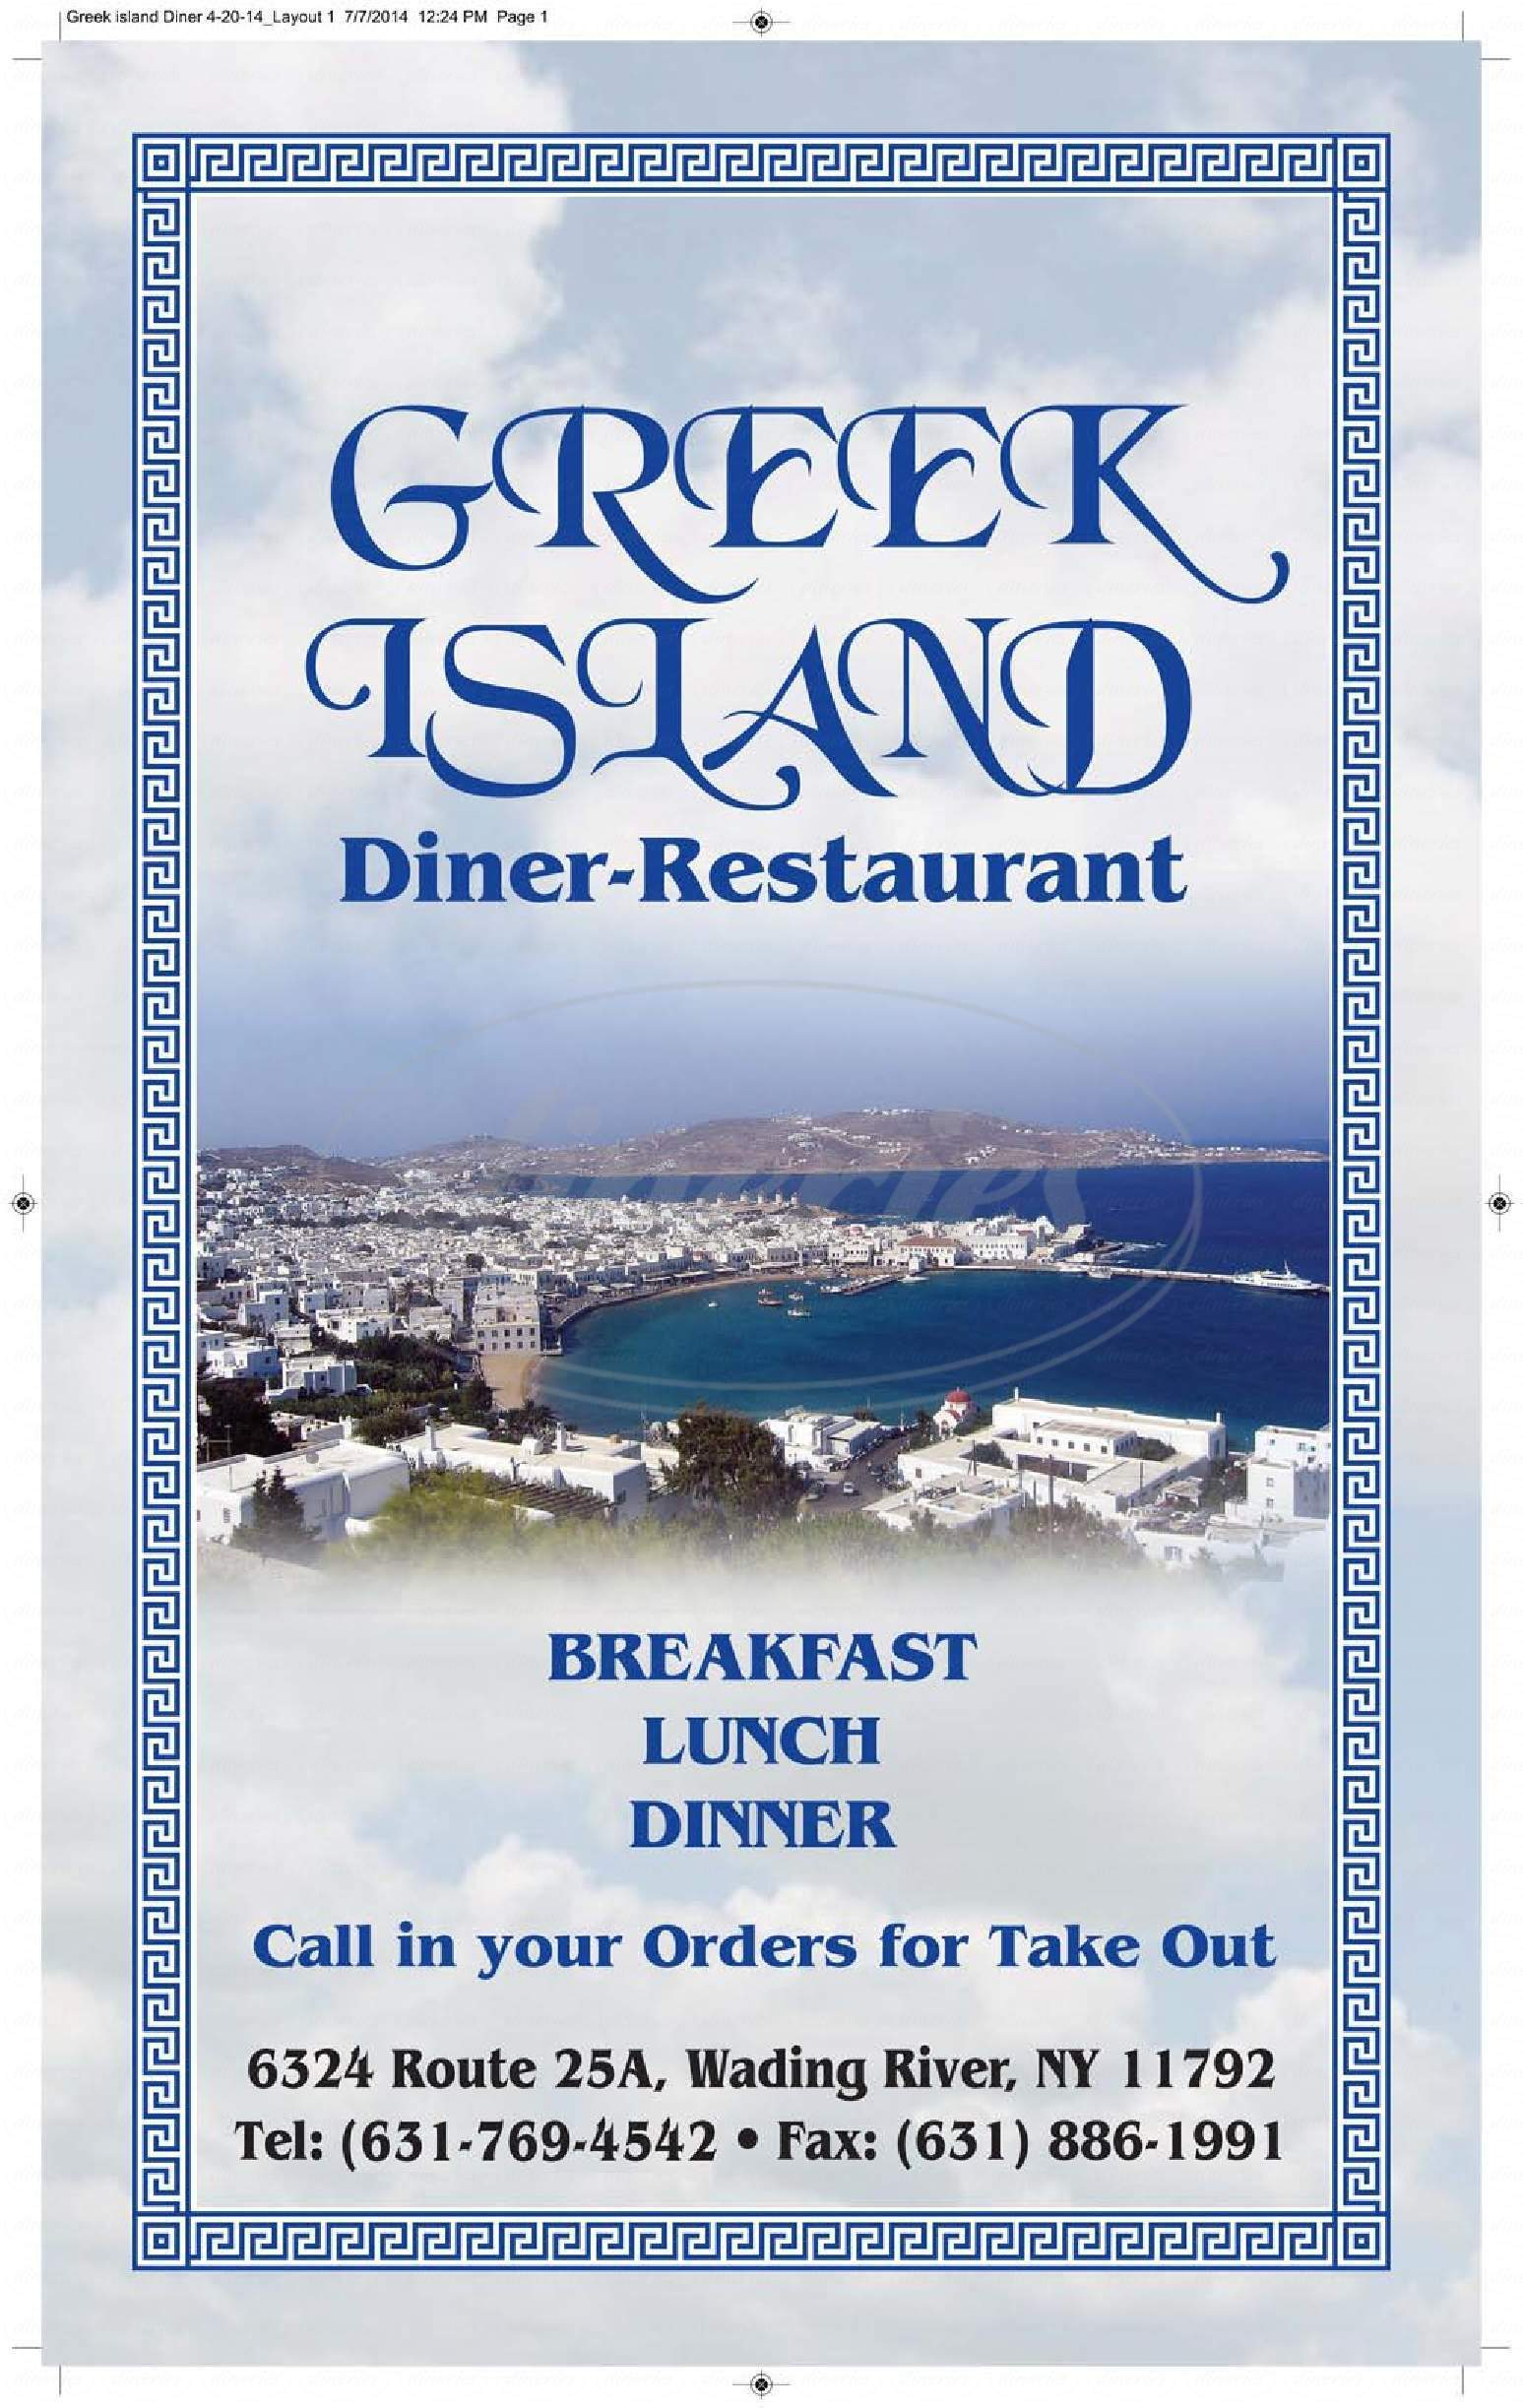 menu for Greek Island Diner